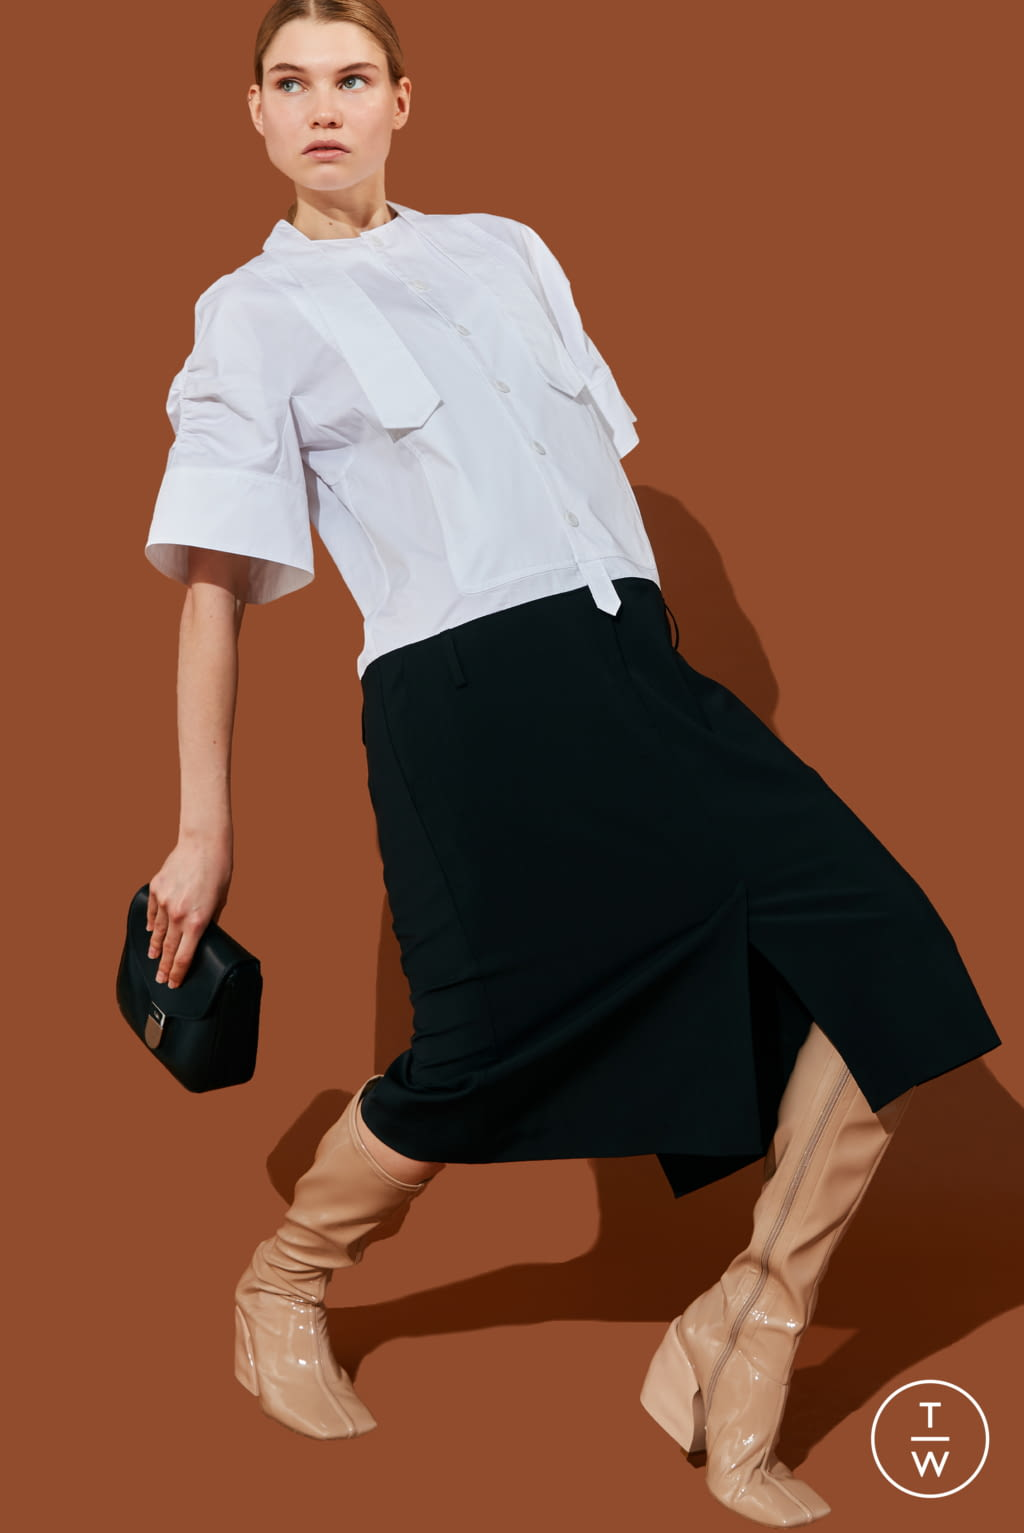 Fashion Week New York Pre-Fall 2020 look 16 from the Tibi collection 女装